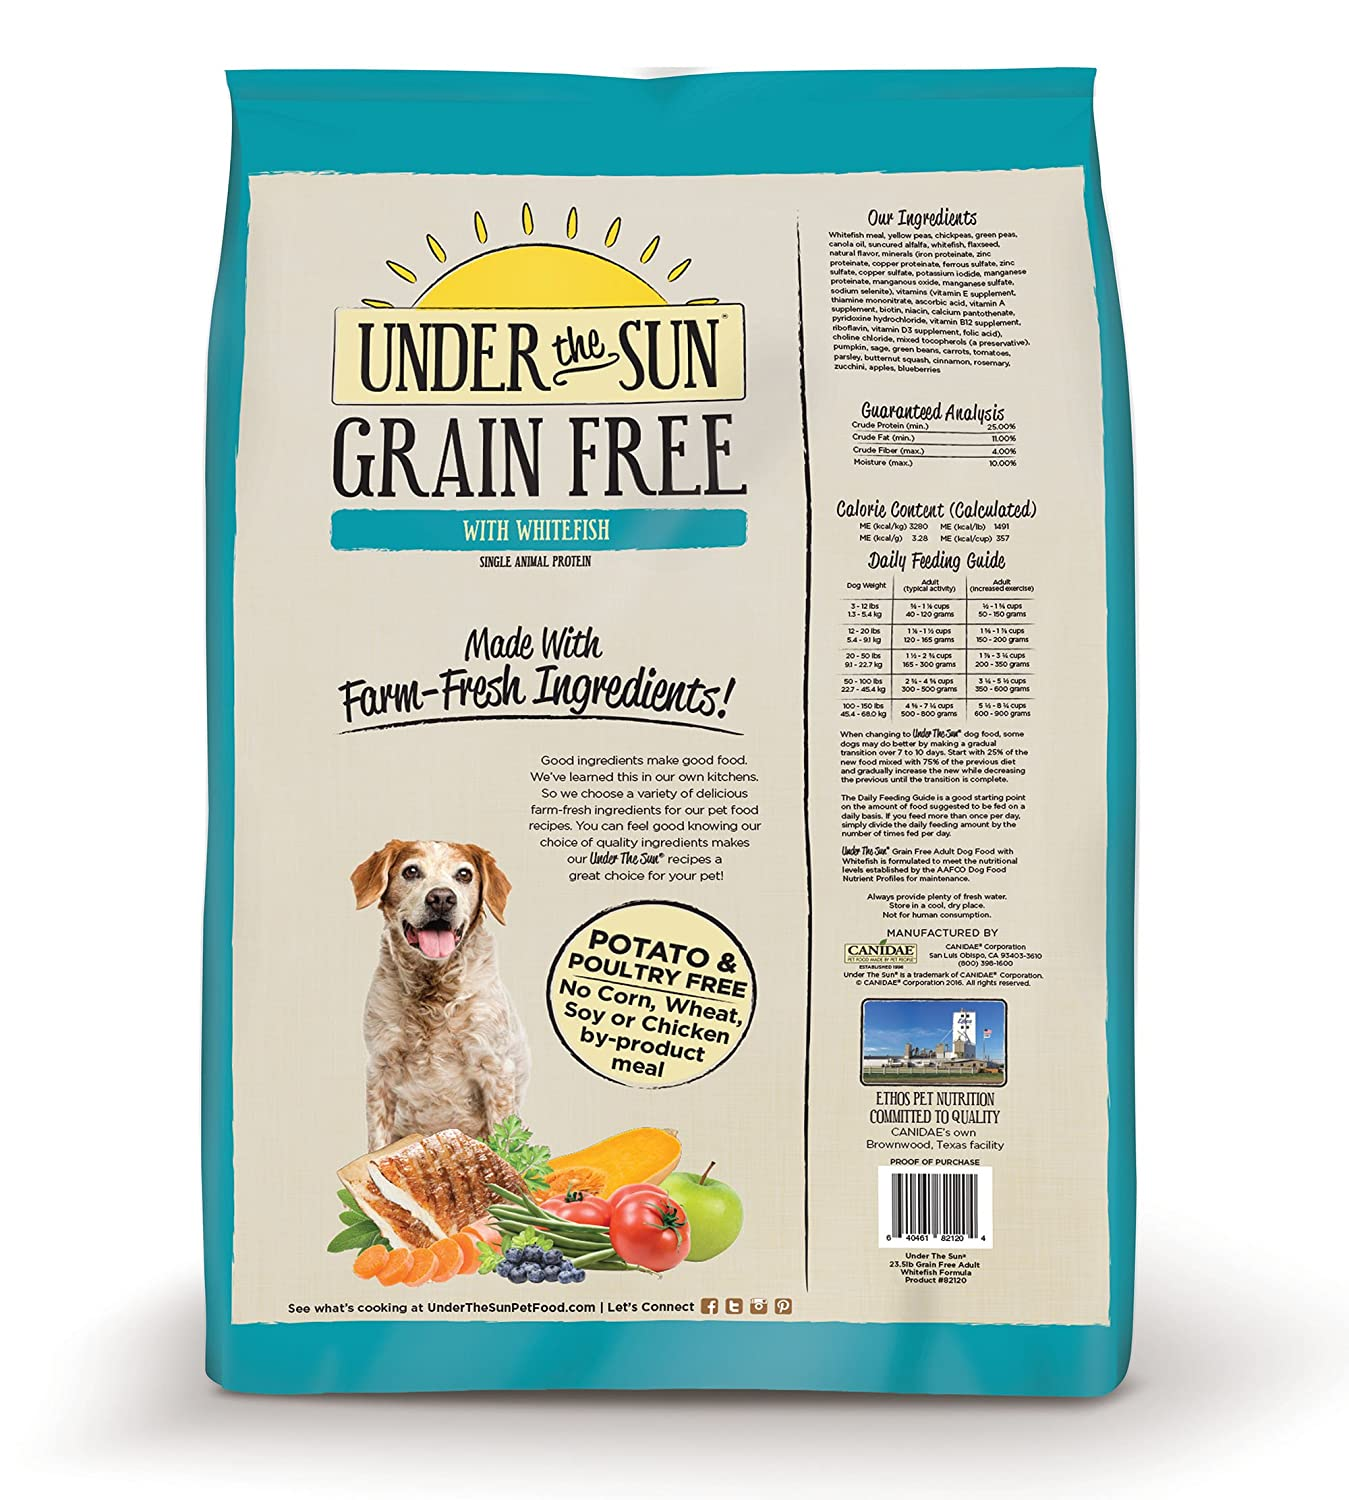 Choline Chloride In Dog Food Food